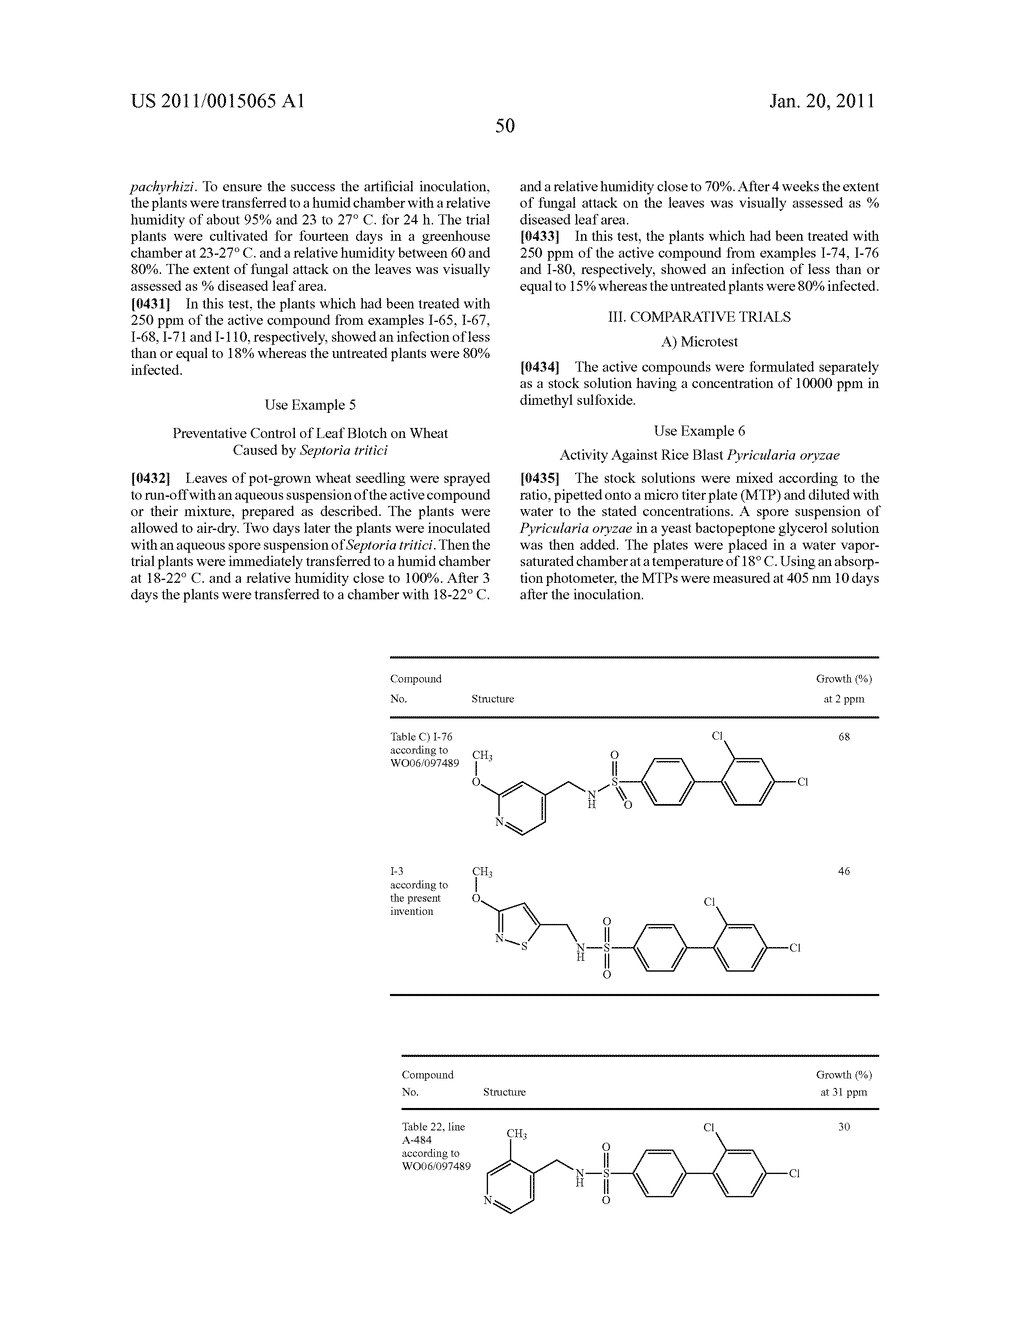 Substituted Sulfonic Acid Amide Compounds - diagram, schematic, and image 51